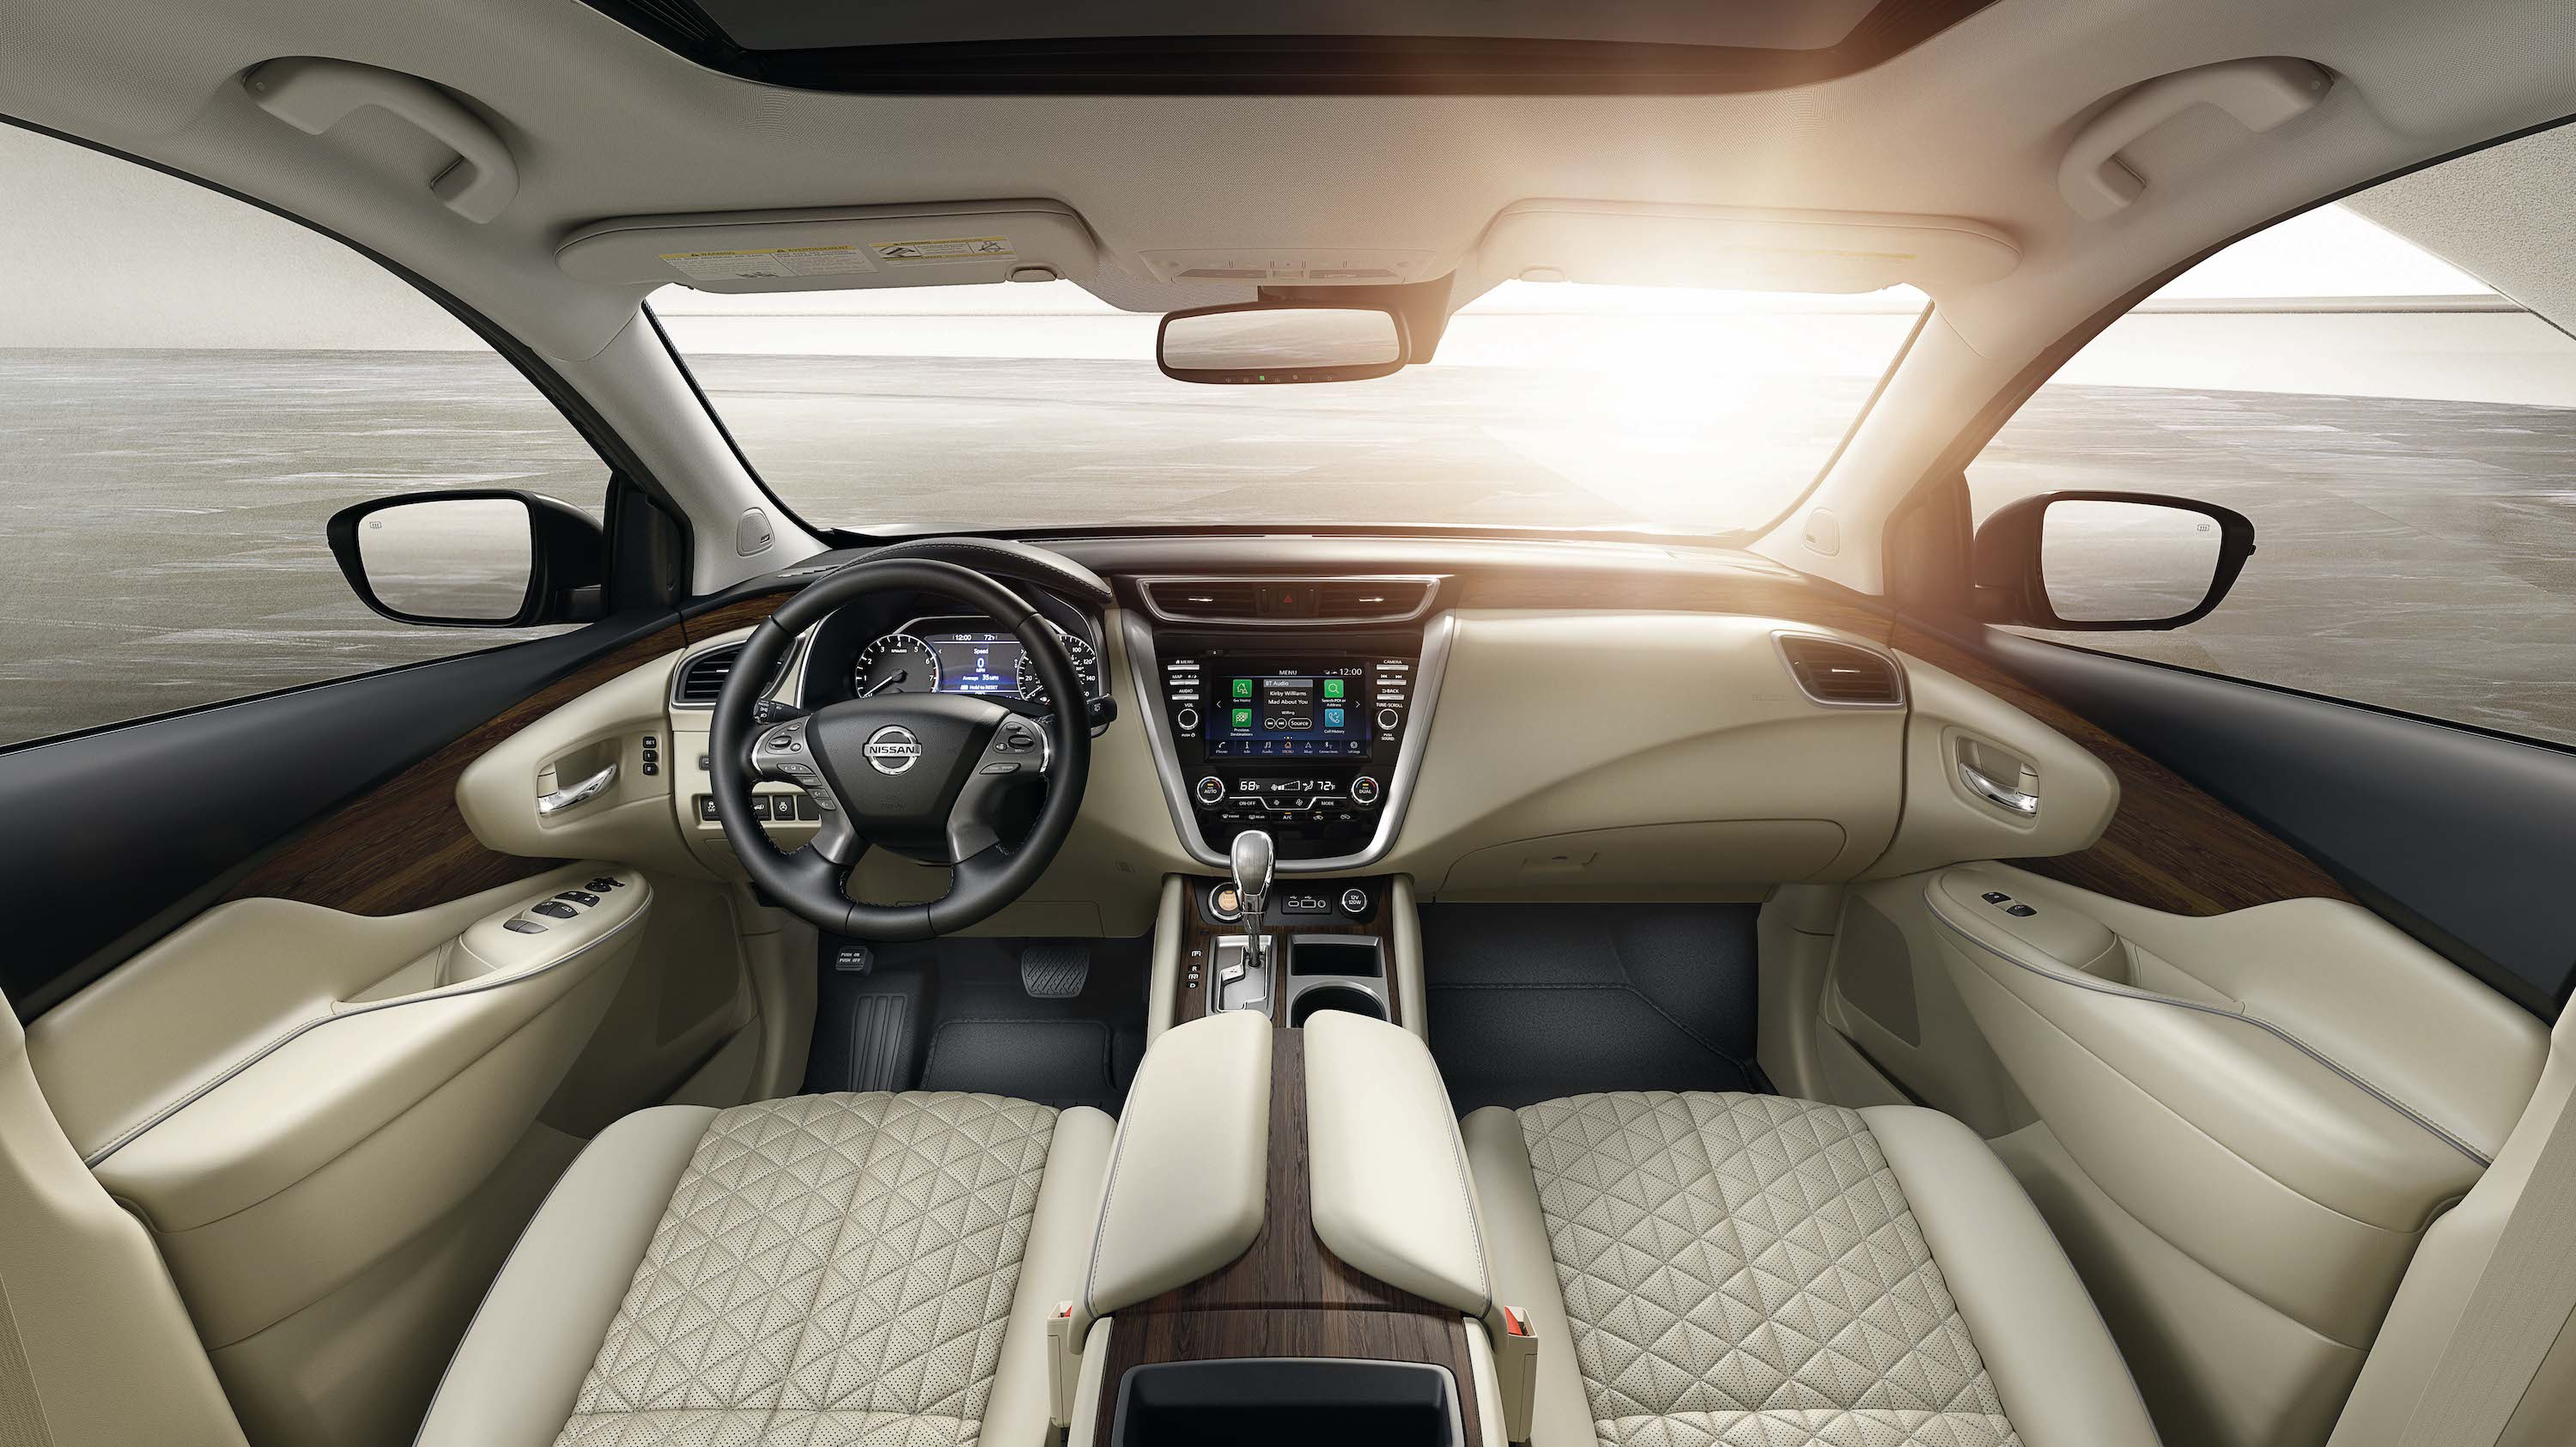 Features of the 2019 Nissan Murano at Hanover Nissan | The beige interior of the 2019 murano